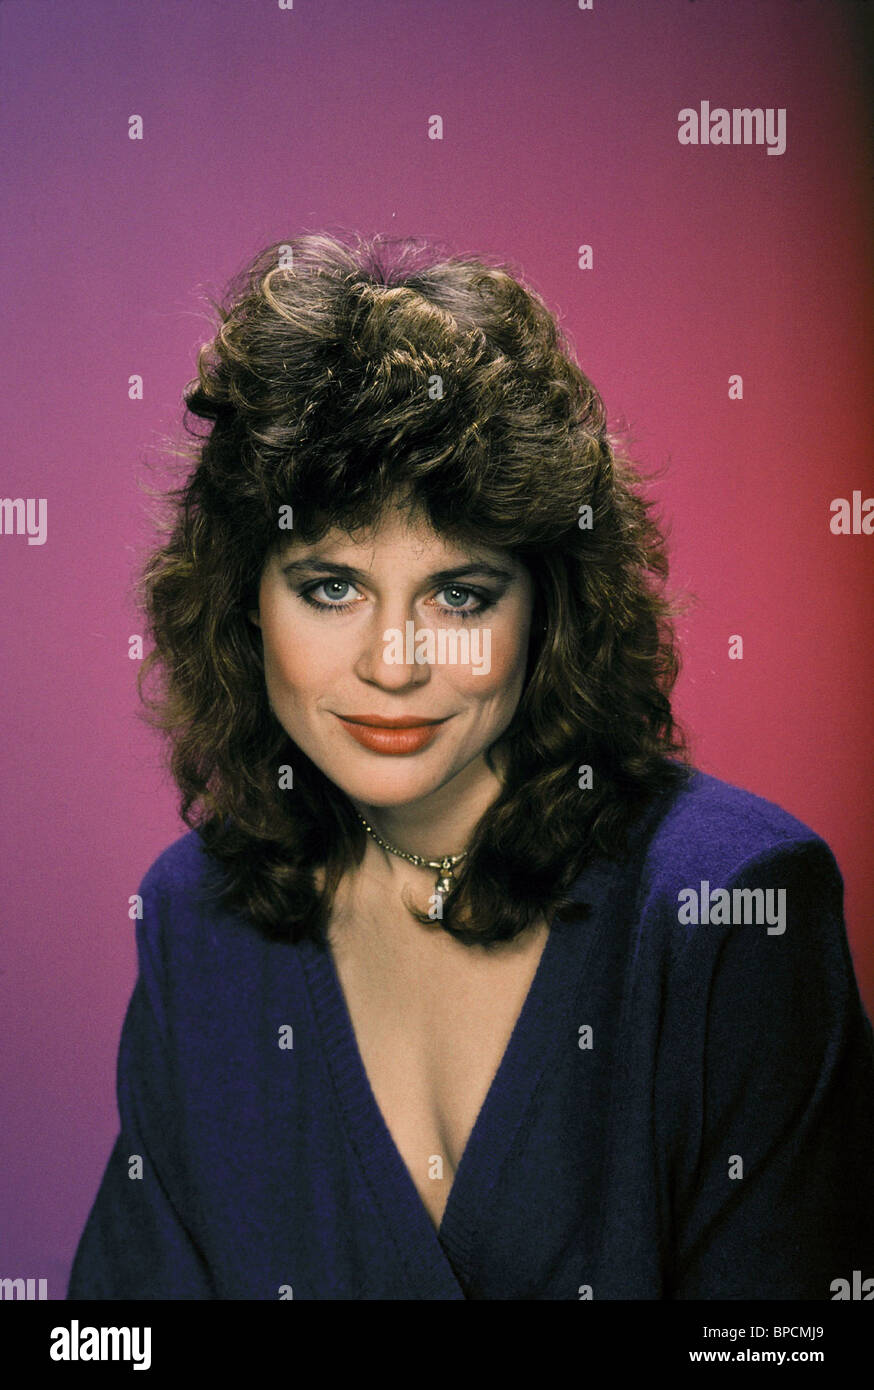 LINDA HAMILTON SECRET WEAPONS (1985) - Stock Image